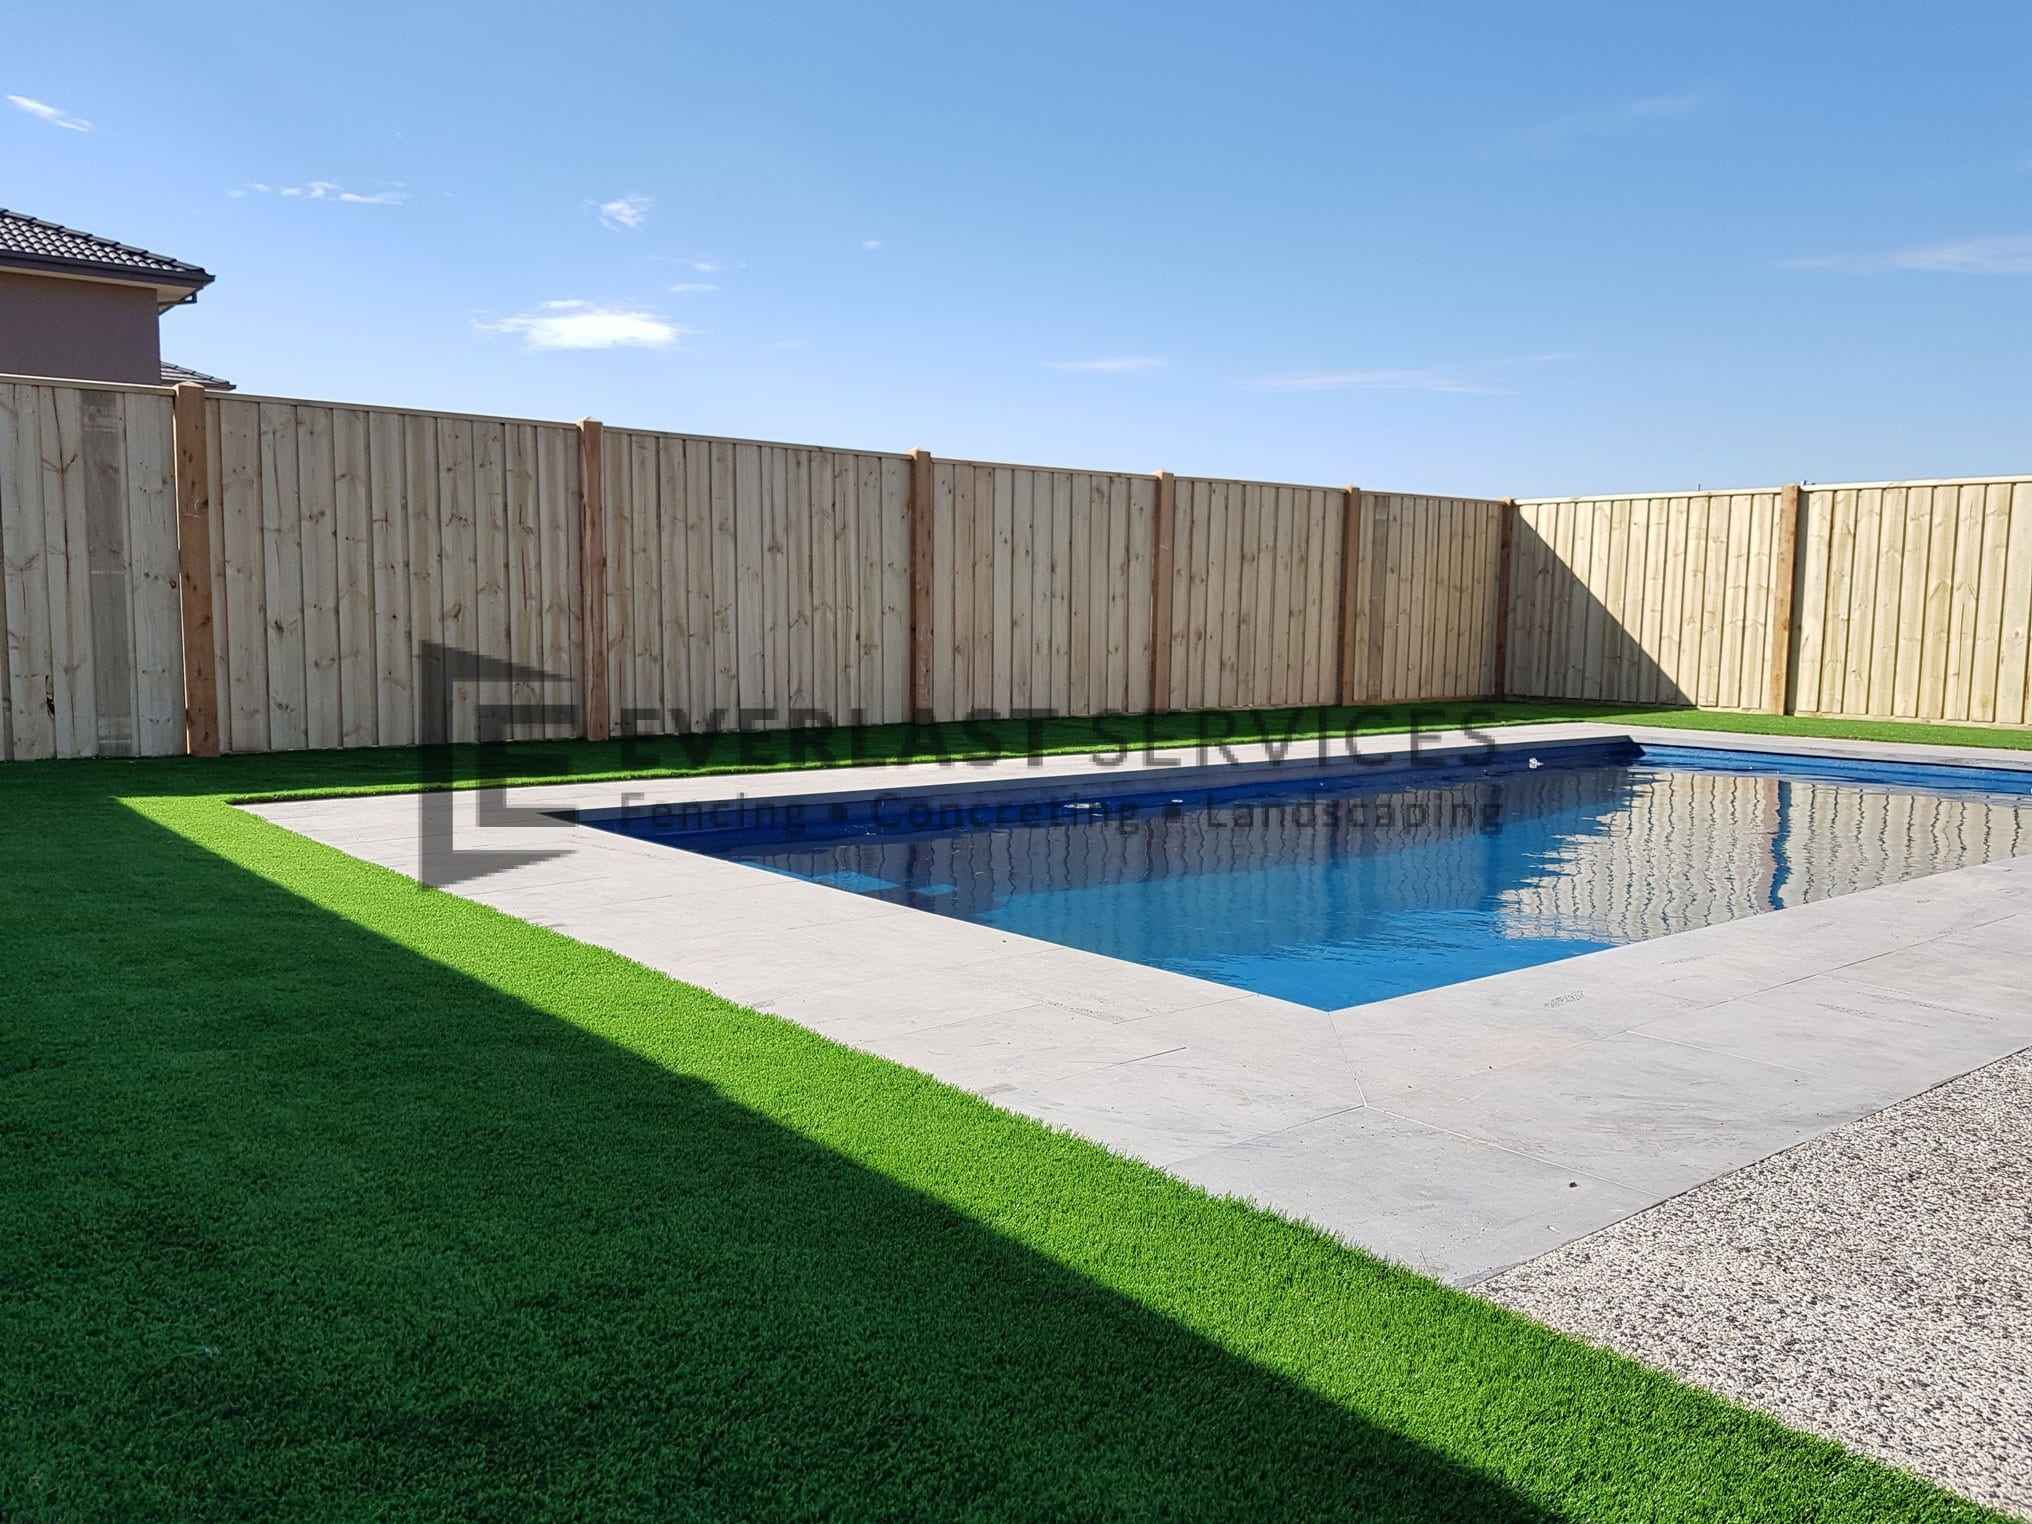 L241 - Bluestone-Coping-Synthetic-Grass-Pool-Landscaping